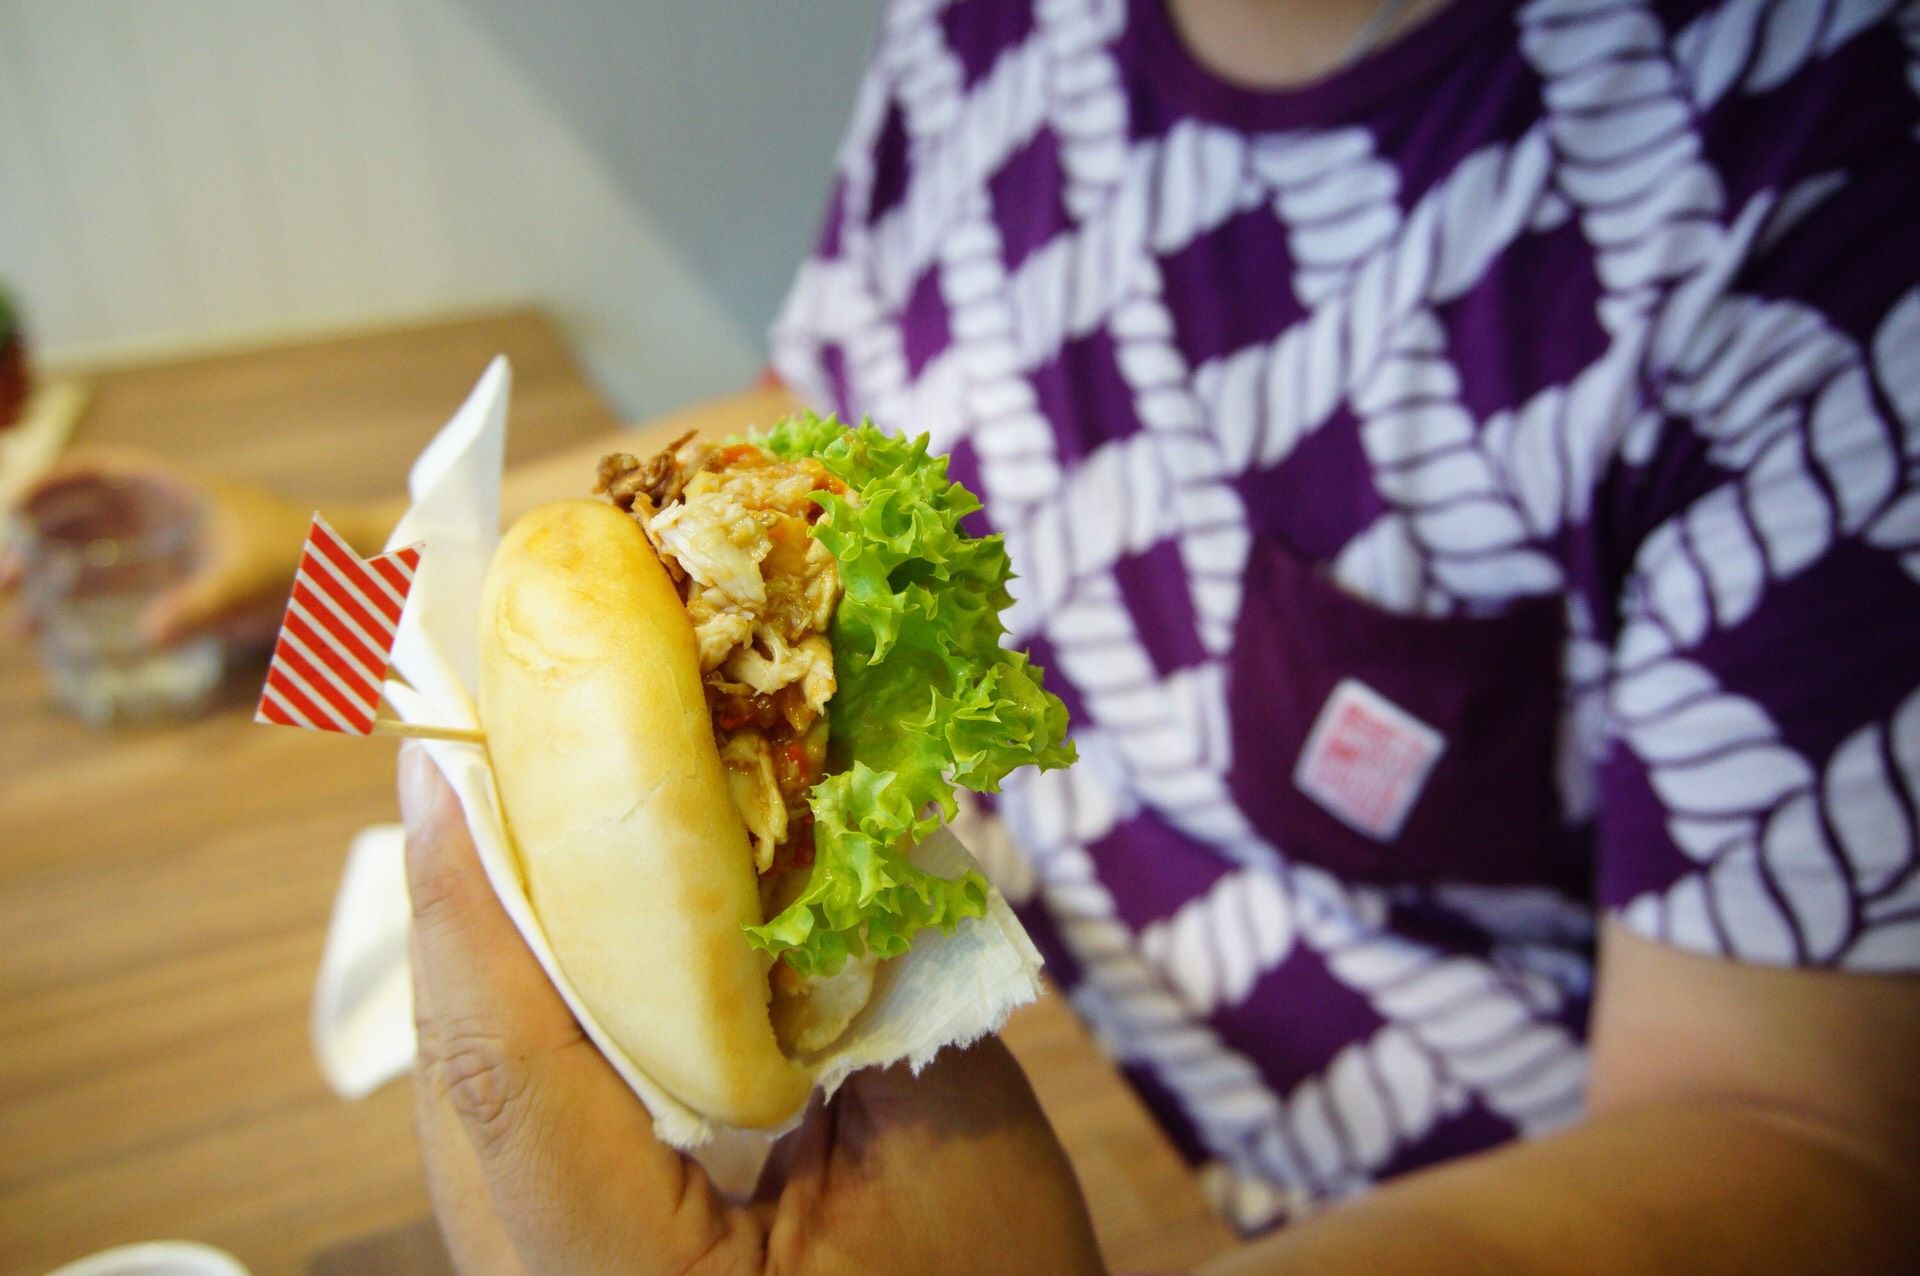 Chili Crab Bao was Spicy enough to give you a kick!